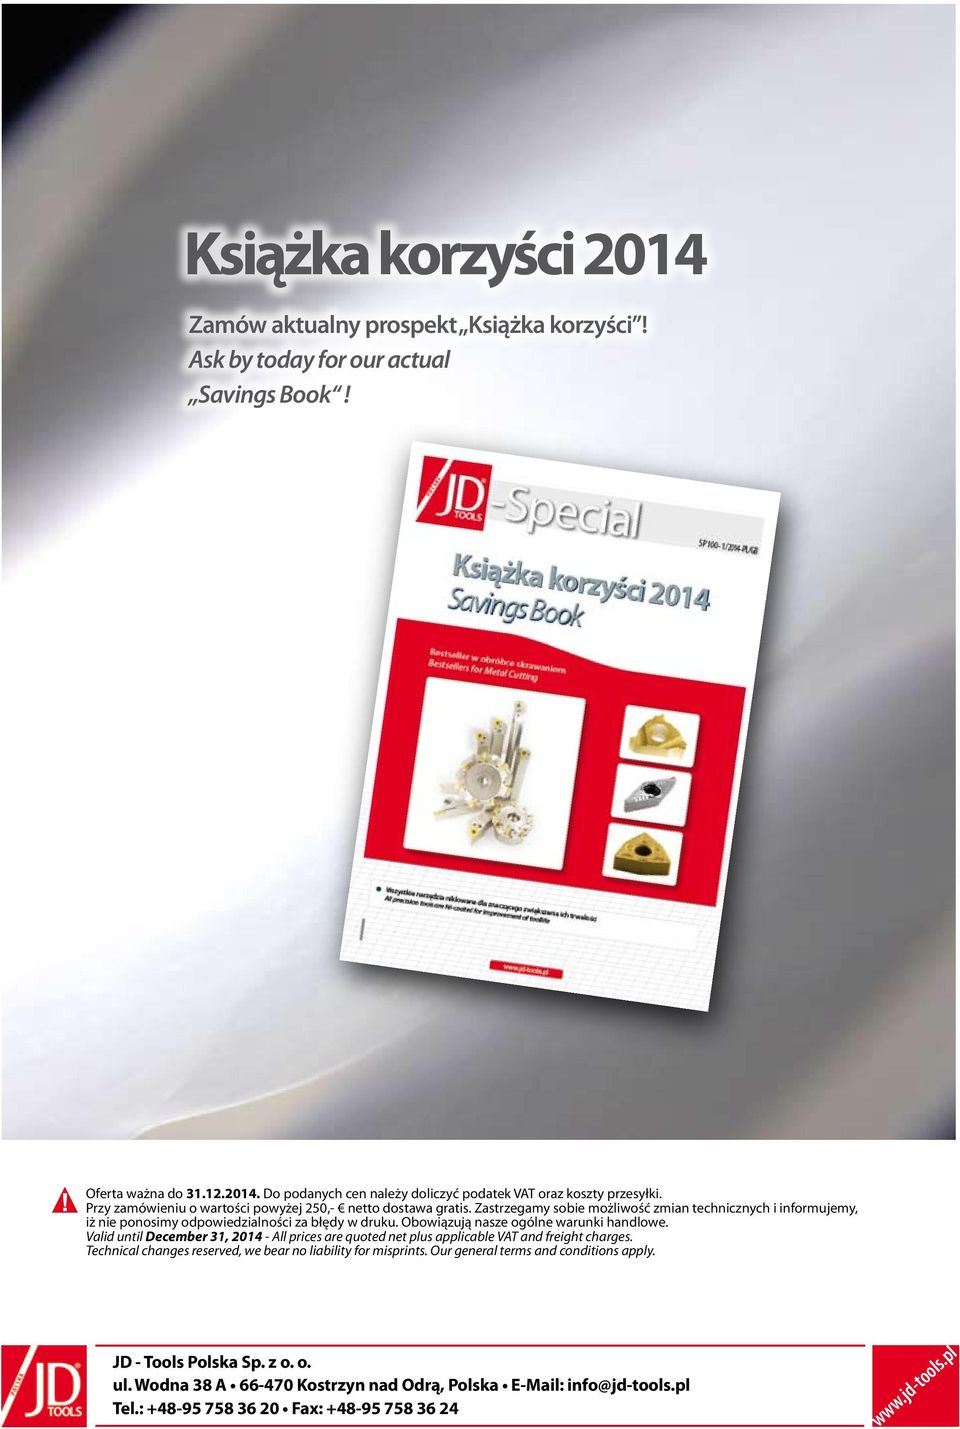 Obowiązują nasze ogólne warunki handlowe. Valid until December 31, 2014 - All prices are quoted net plus applicable VAT and freight charges.